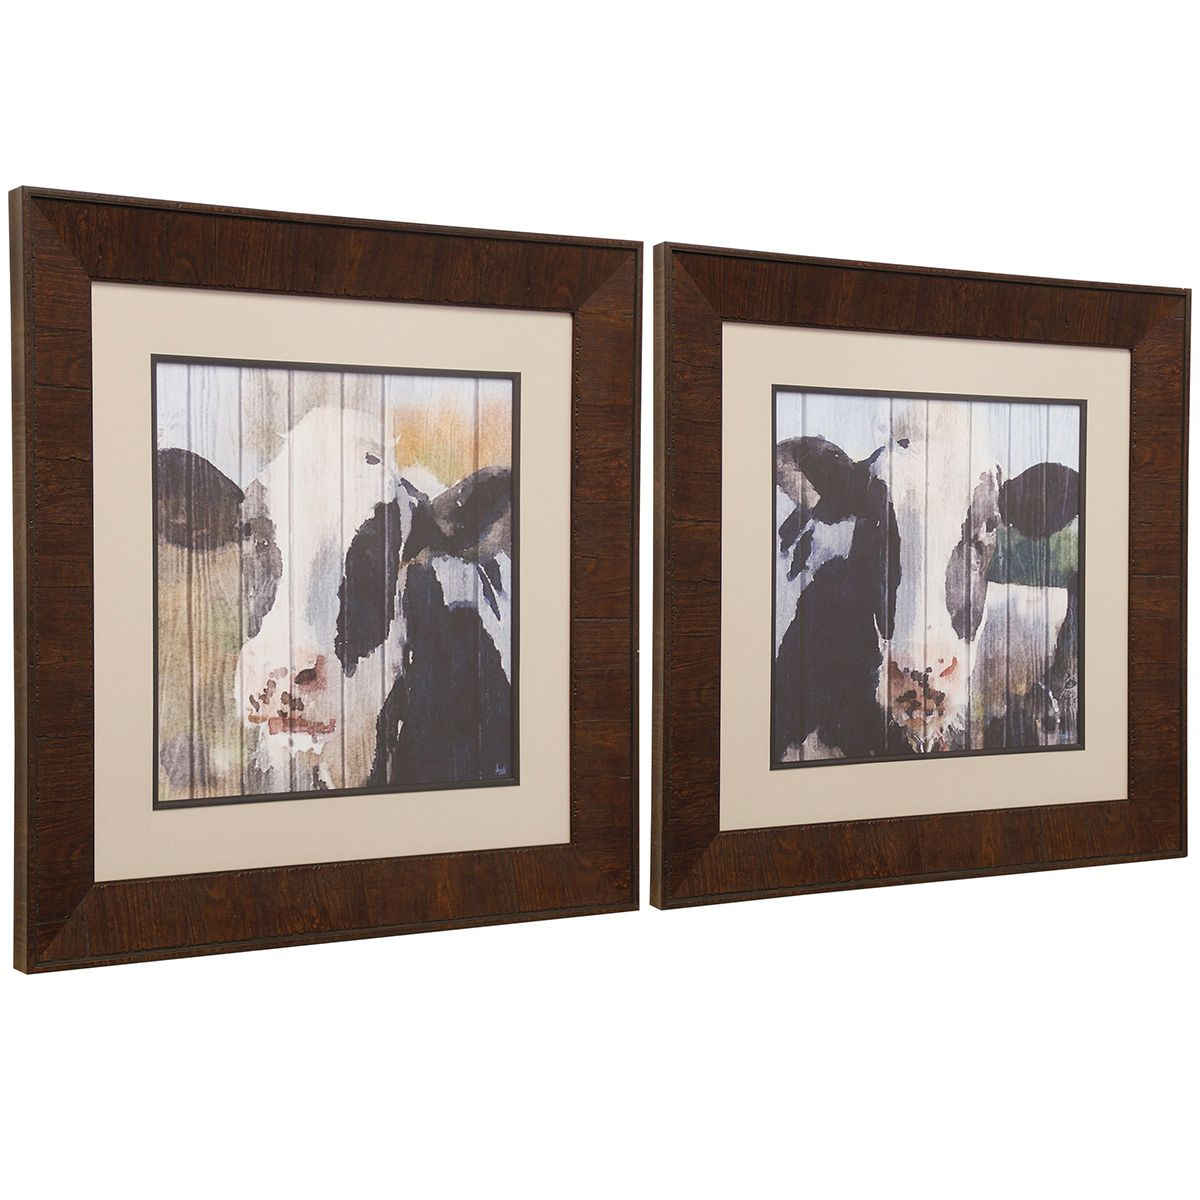 Holstein Framed Wall Art - Set of 2